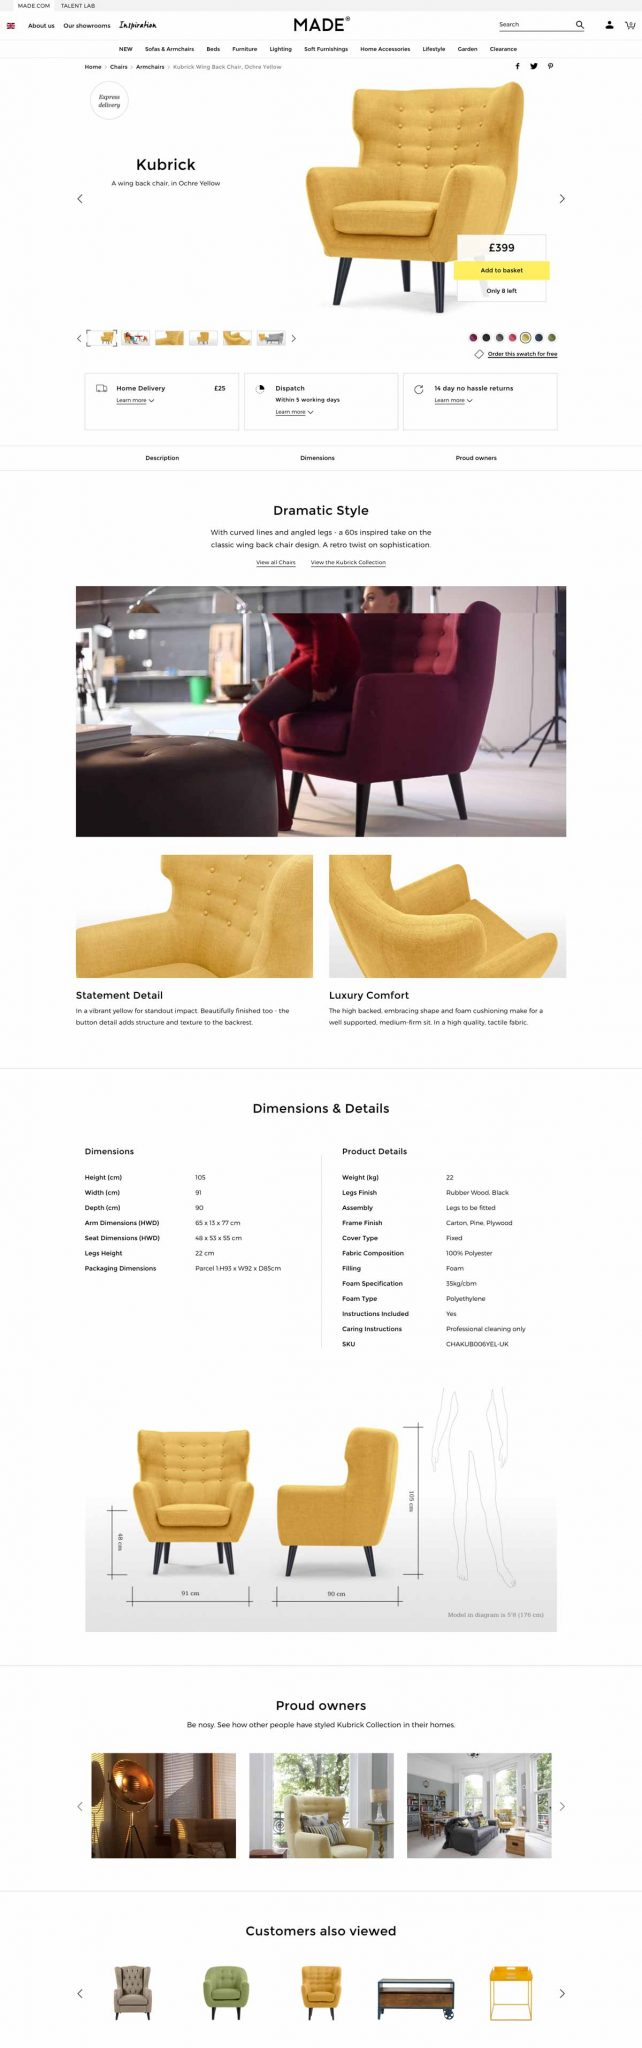 Made.com: Furniture Ecommerce Product Page